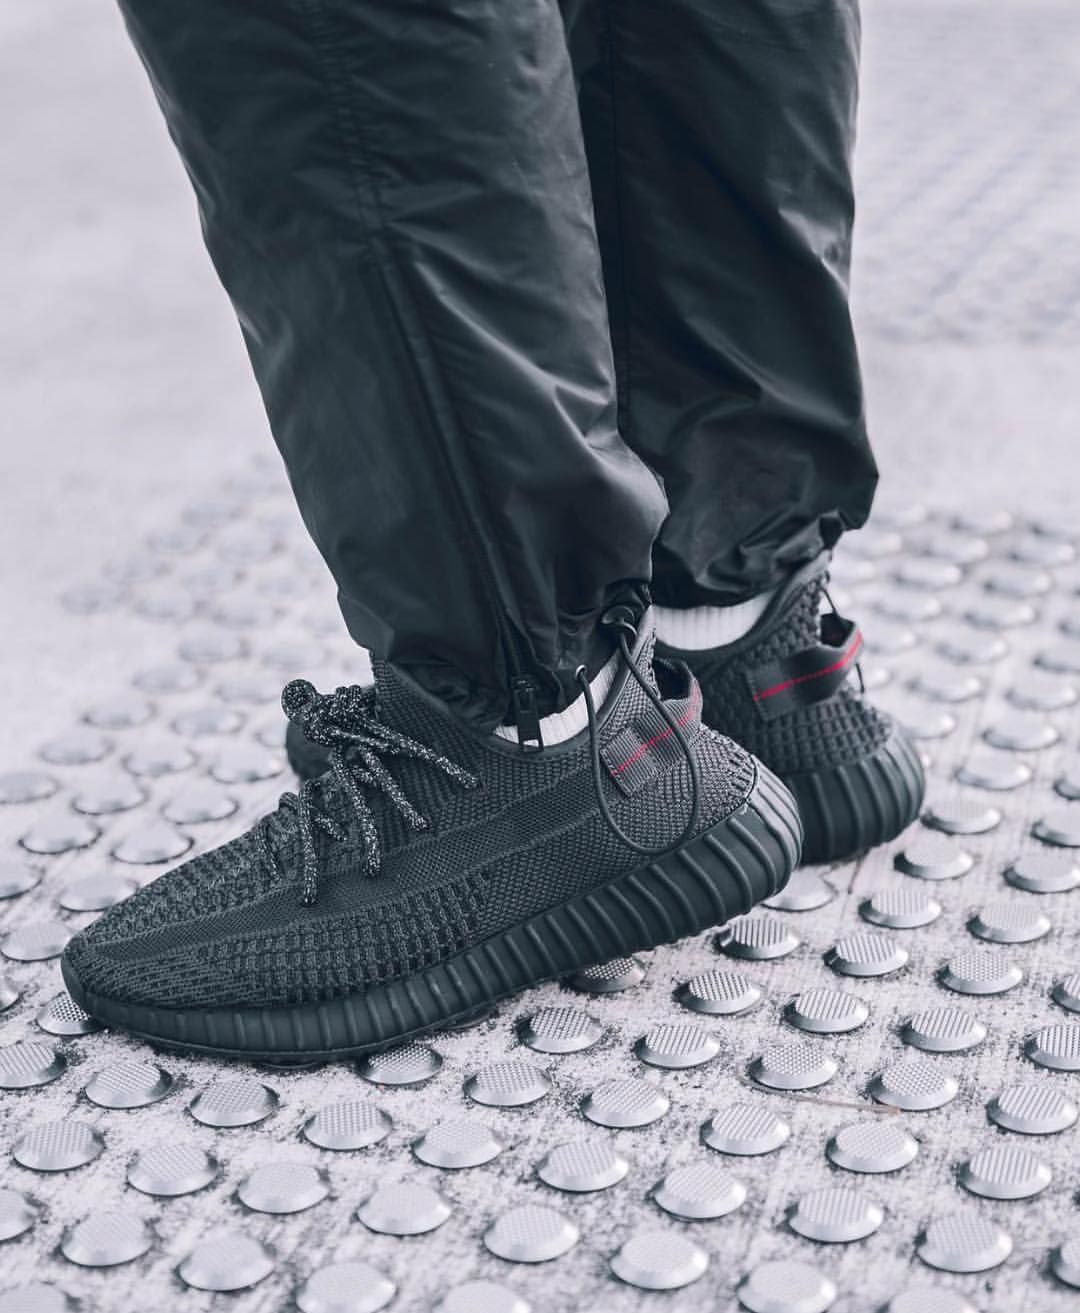 Ynnylifestyle The Meaning Behind The New Yeezy Colorways Kanye West Yeezy Boost 350 V2 Yeezy Adidas Yeezy Boost Adidas Yeezy